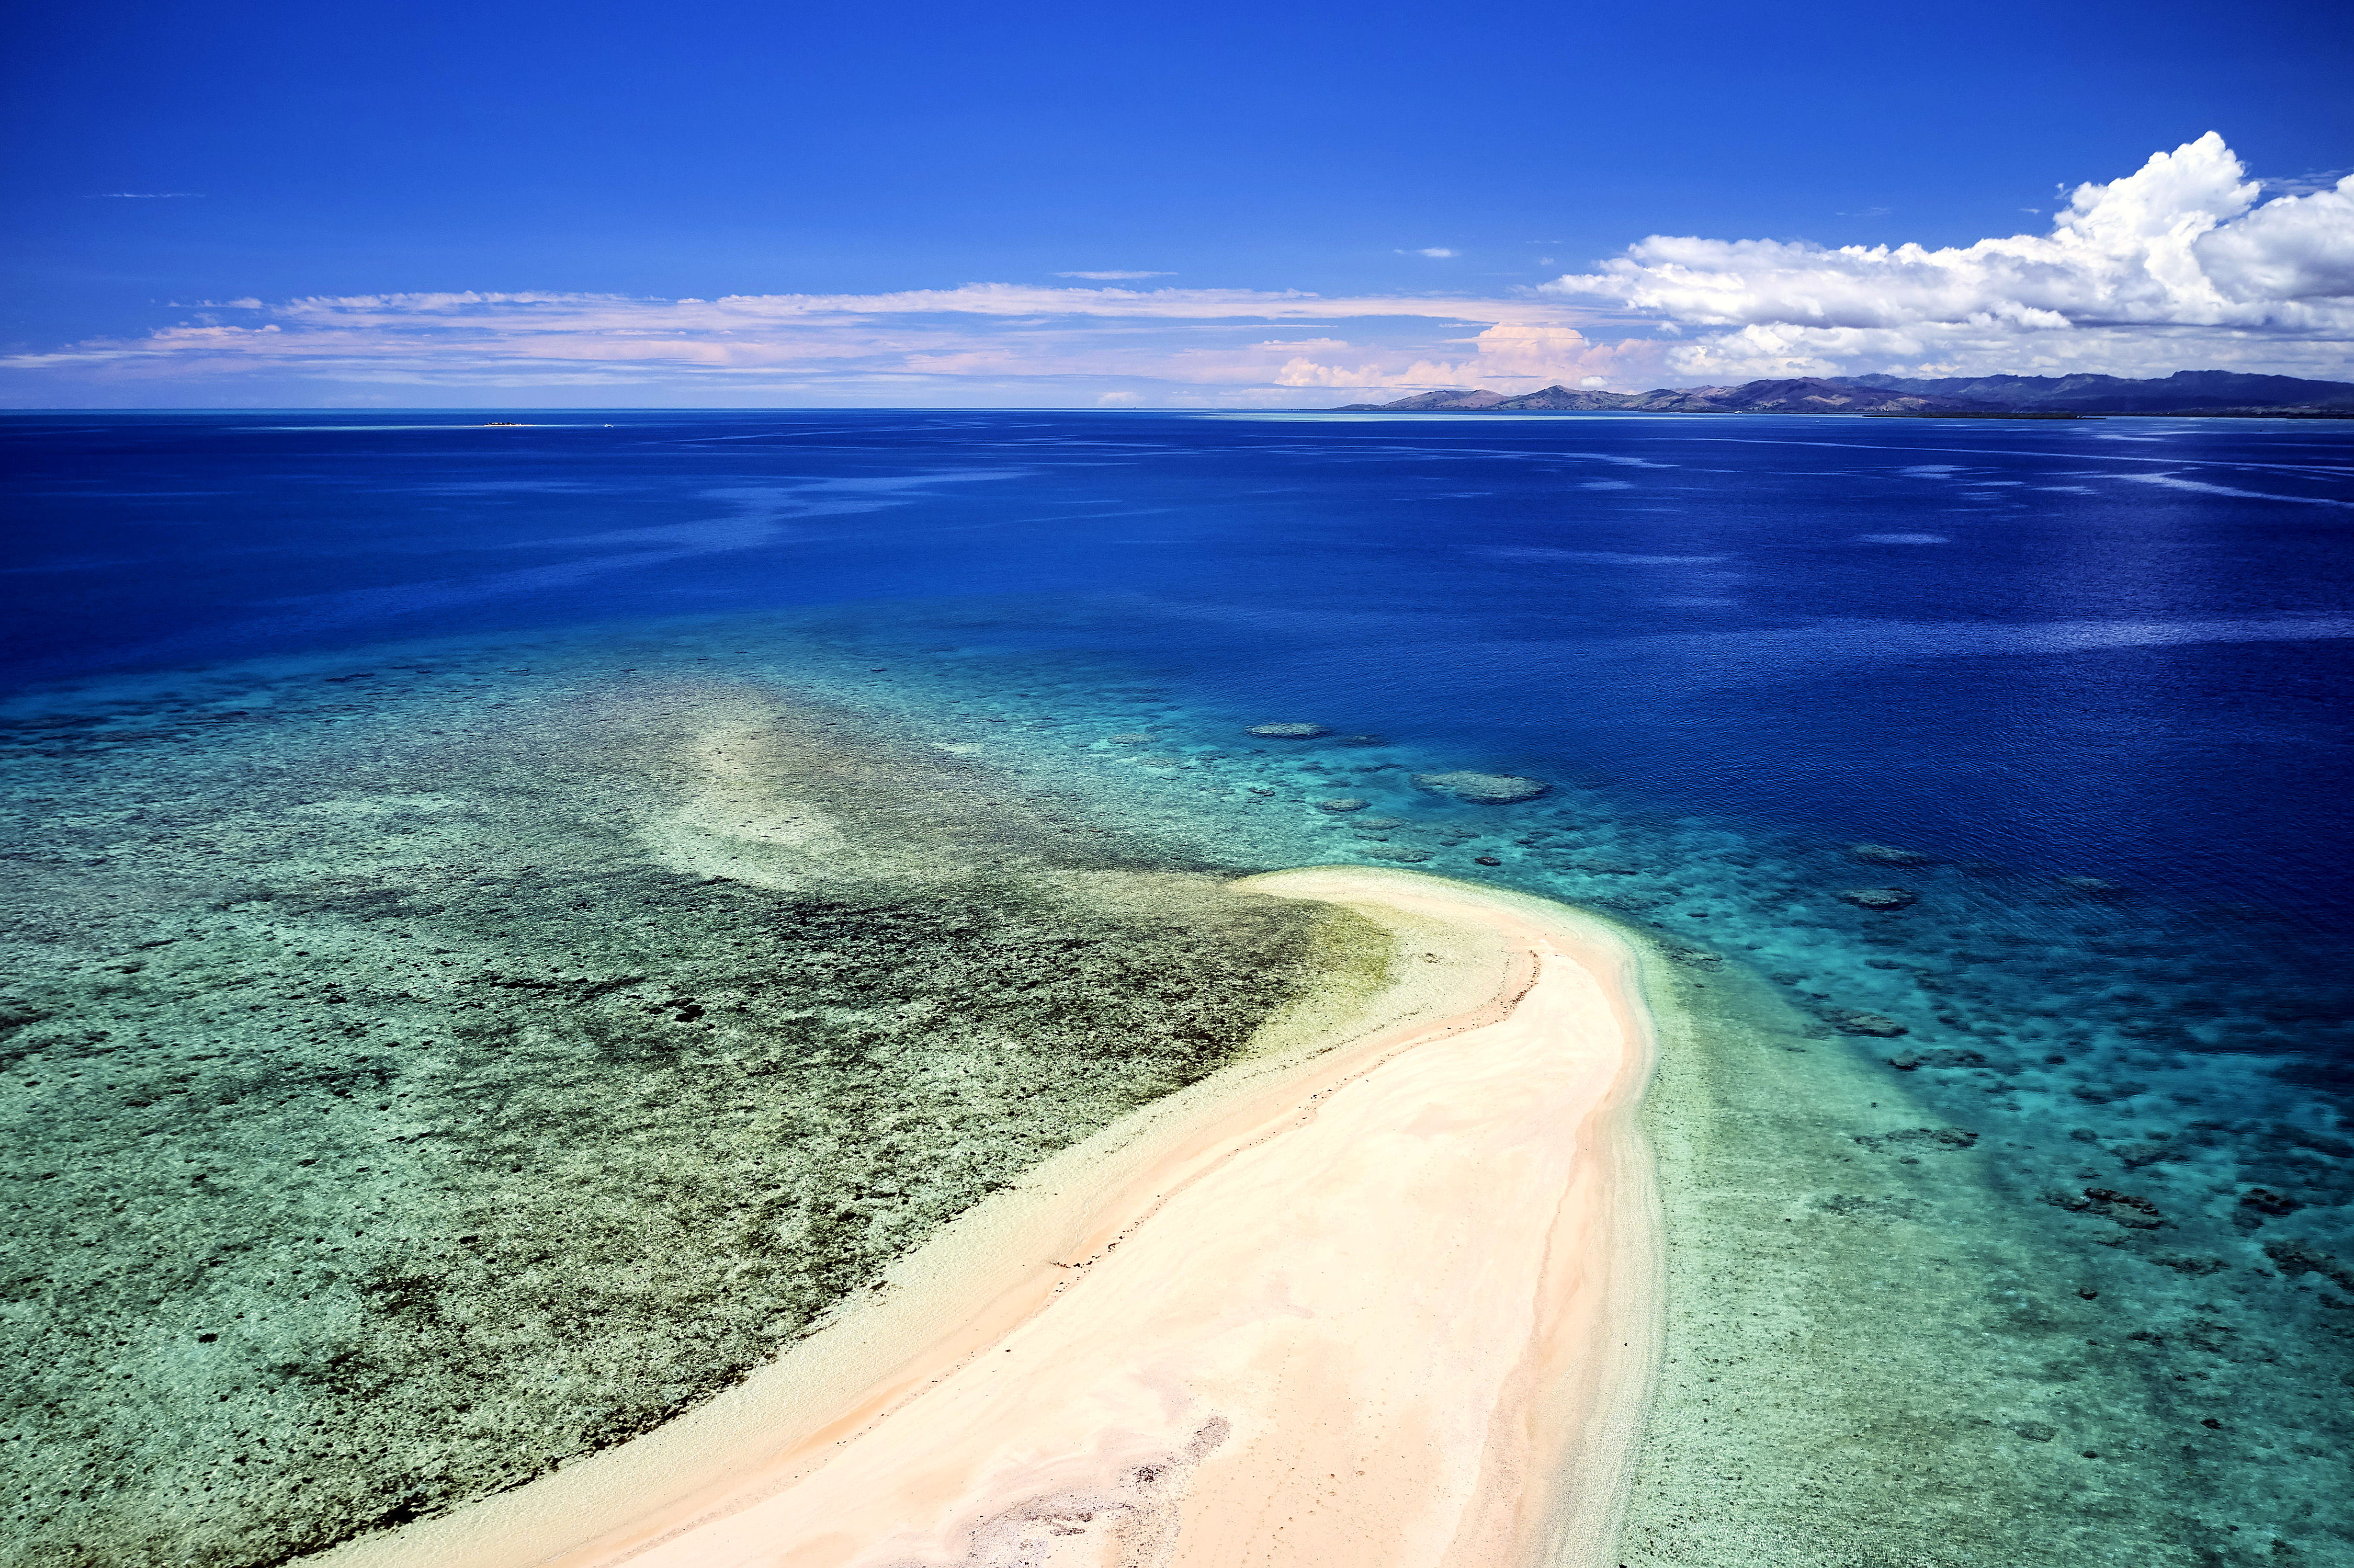 Aerial view of remote island in Fiji overlooking blue coral reef